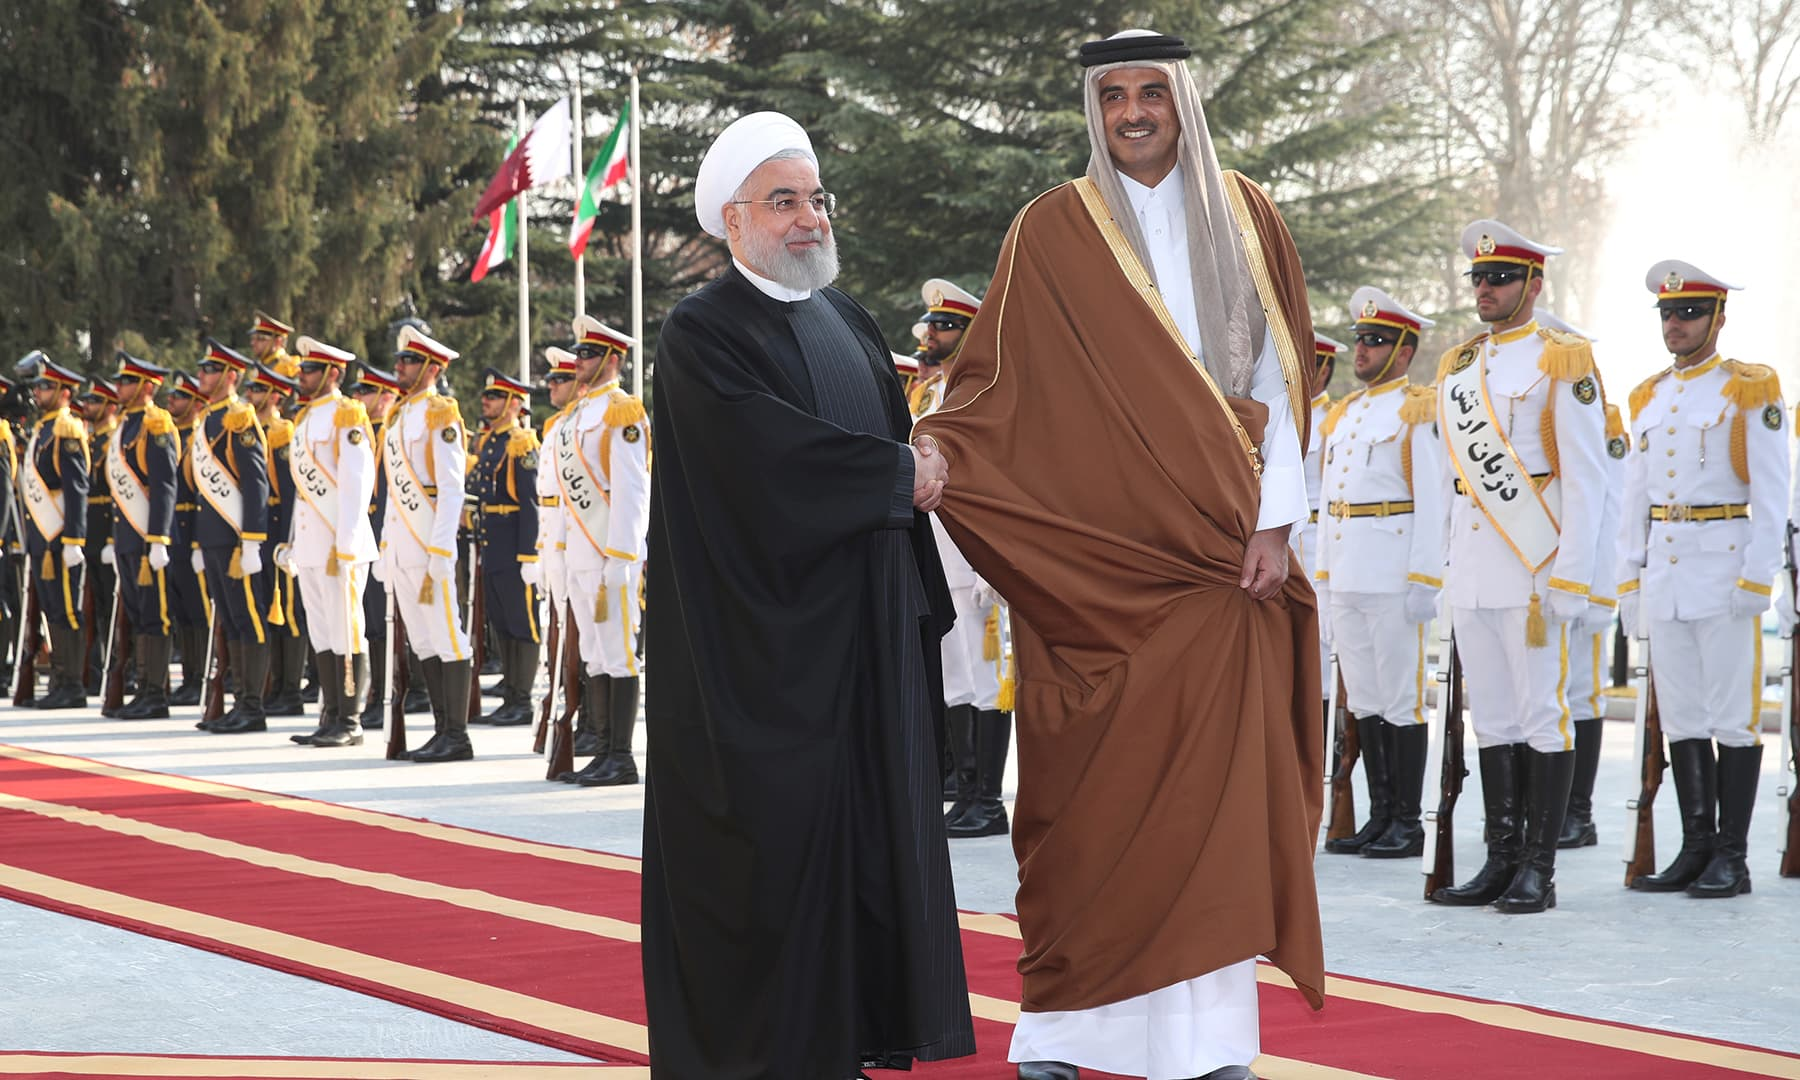 Iranian President Hassan Rouhani shakes hands with Qatar Emir Sheikh Tamim bin Hamad bin Khalifa Al-Thani during a welcome ceremony in Iran on  Jan 12. — Reuters